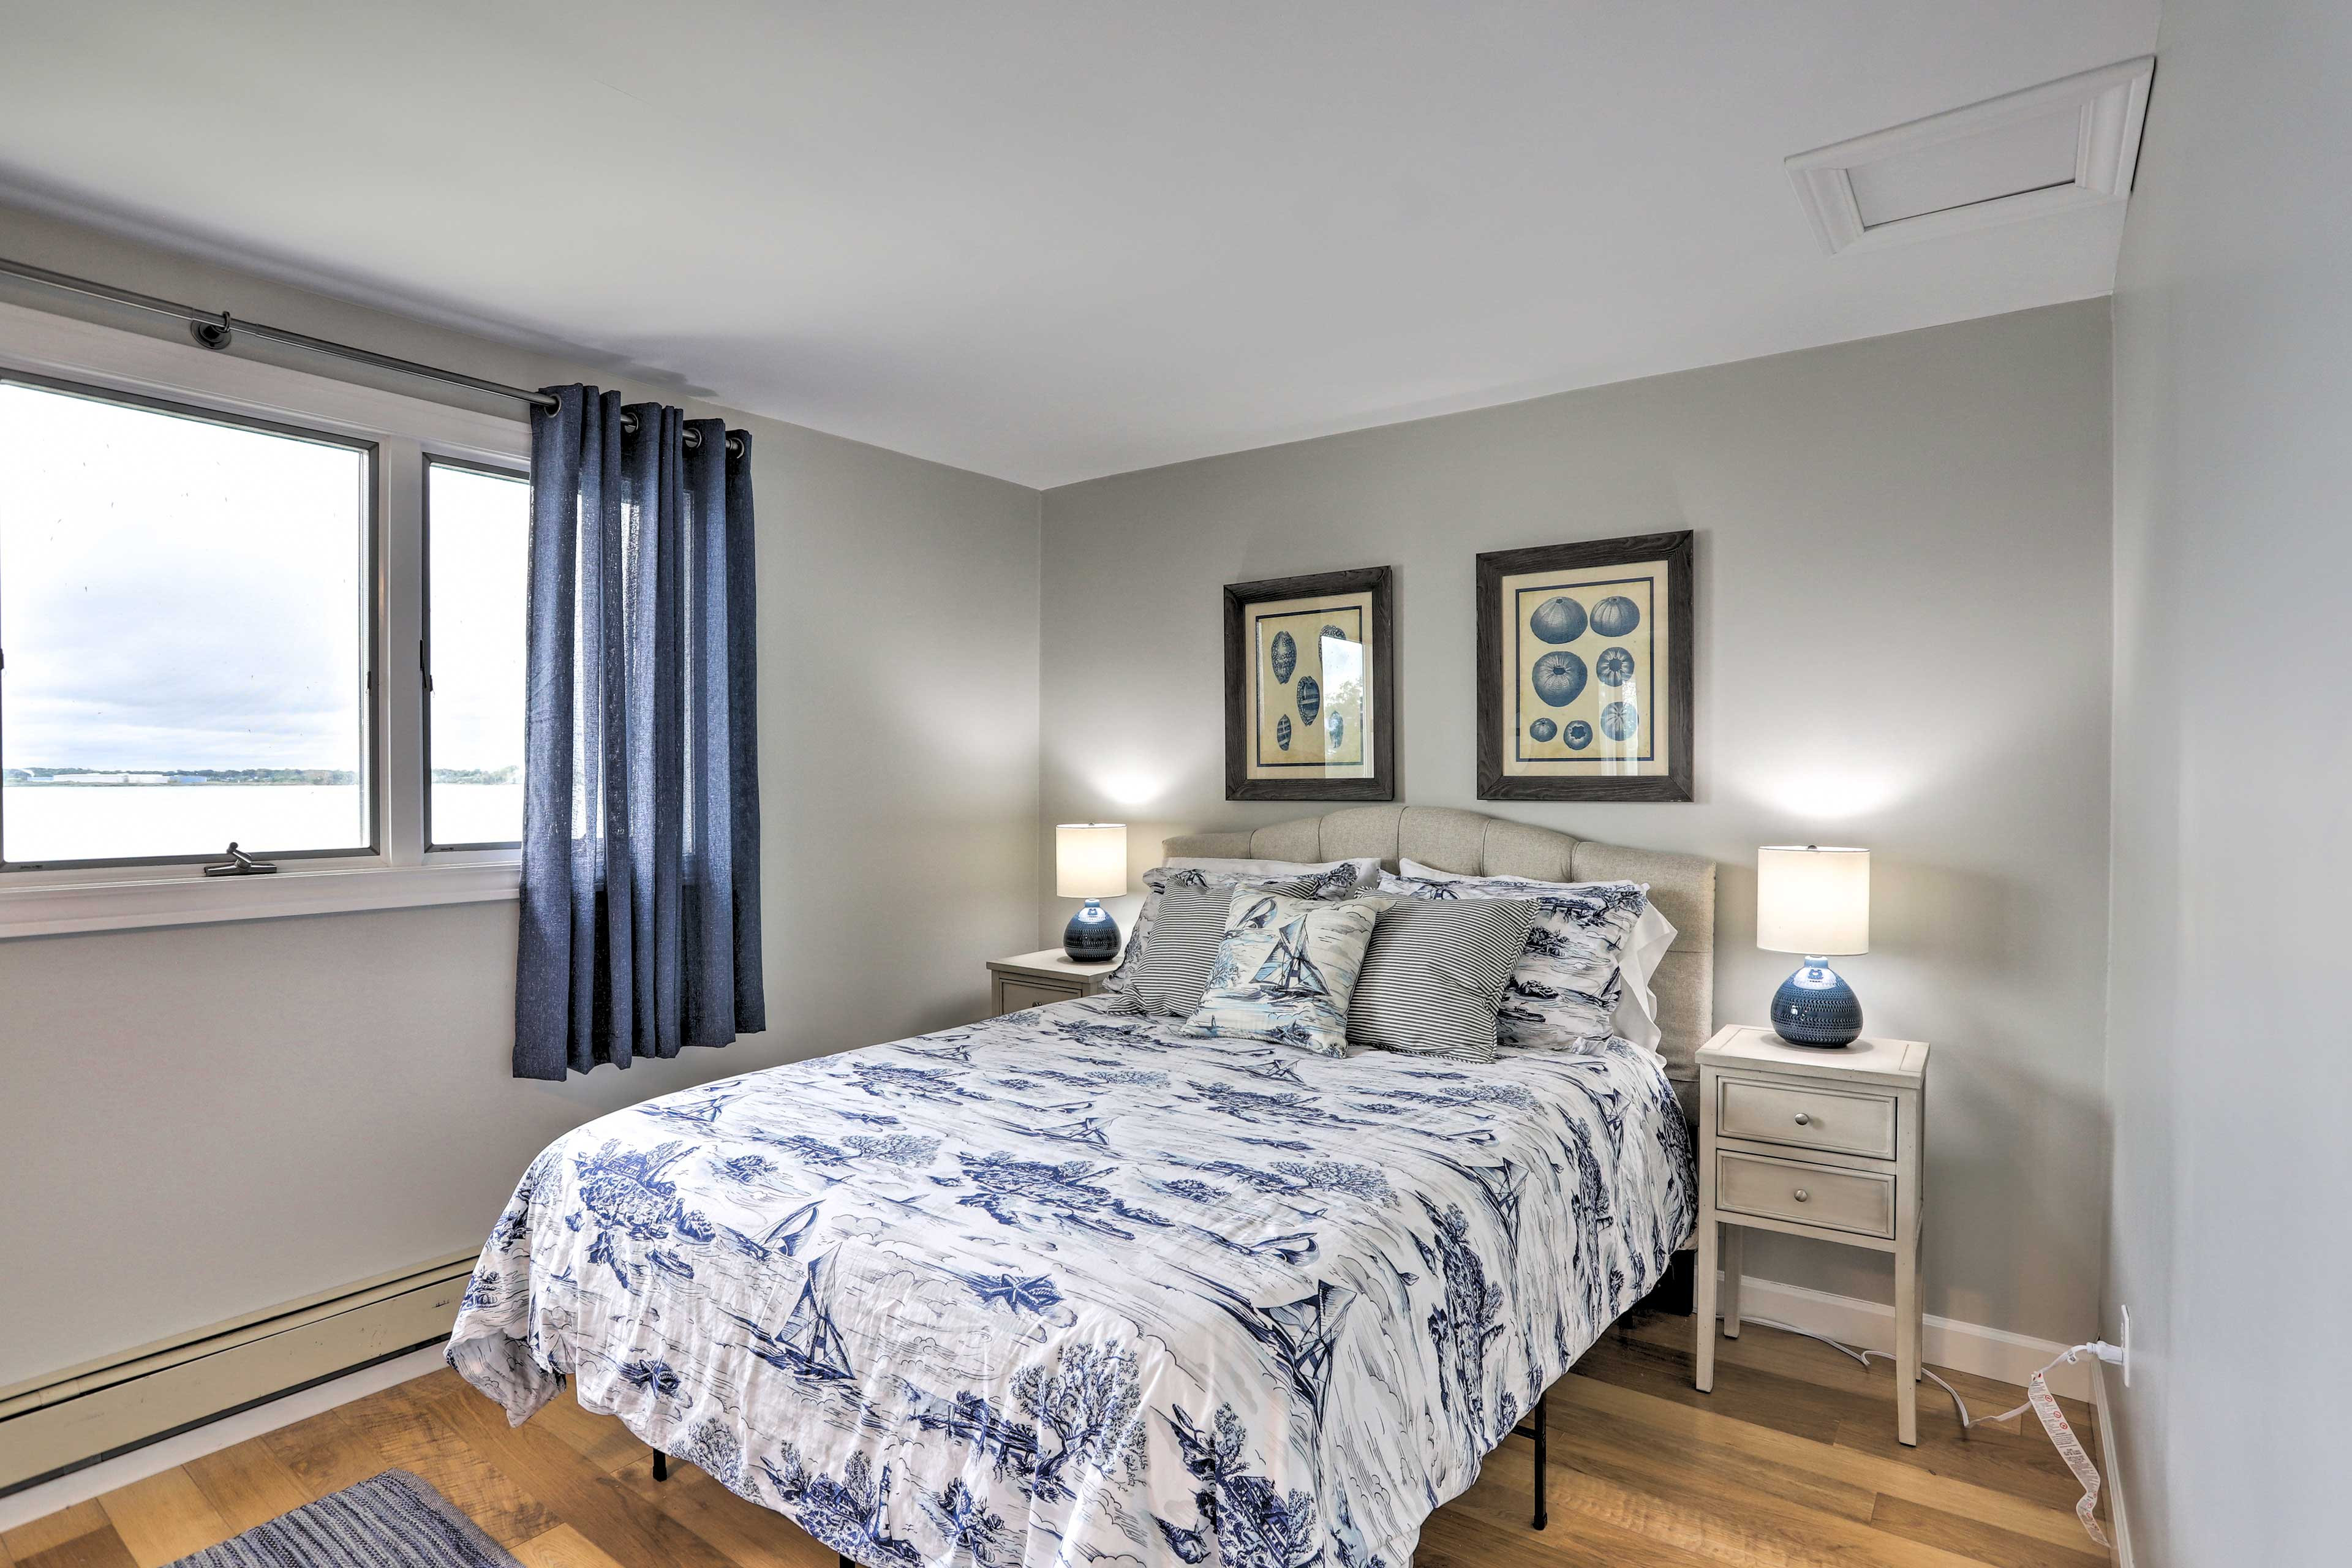 The soft tones of blue in the 2nd room are sure to calm and provide relaxation.